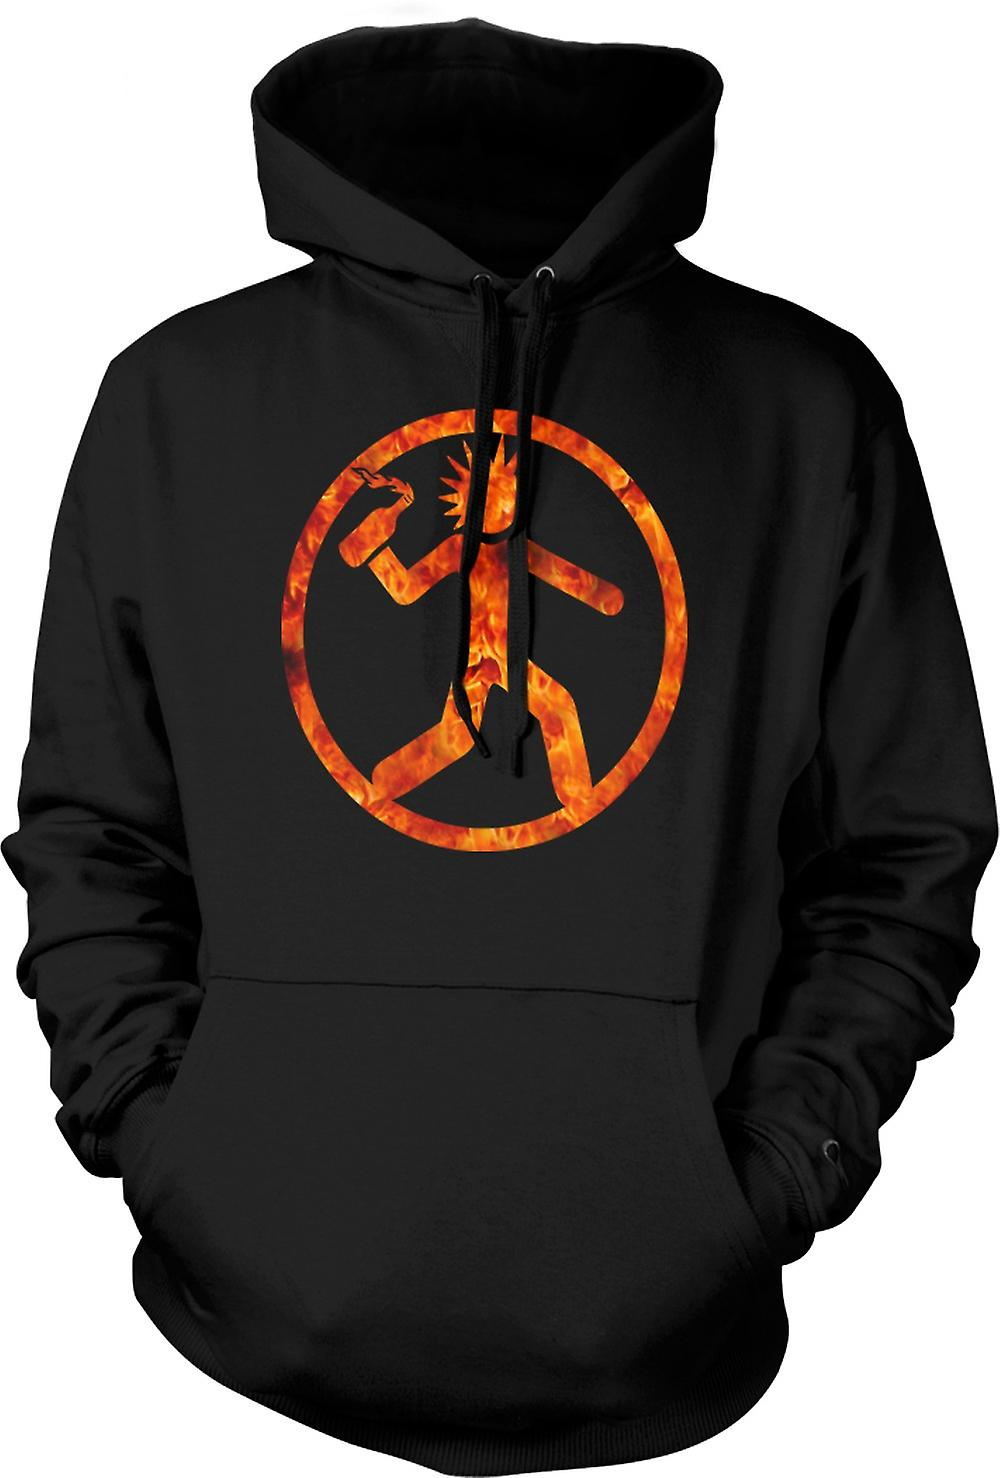 Mens Hoodie - Riot Anarchy - Revolution